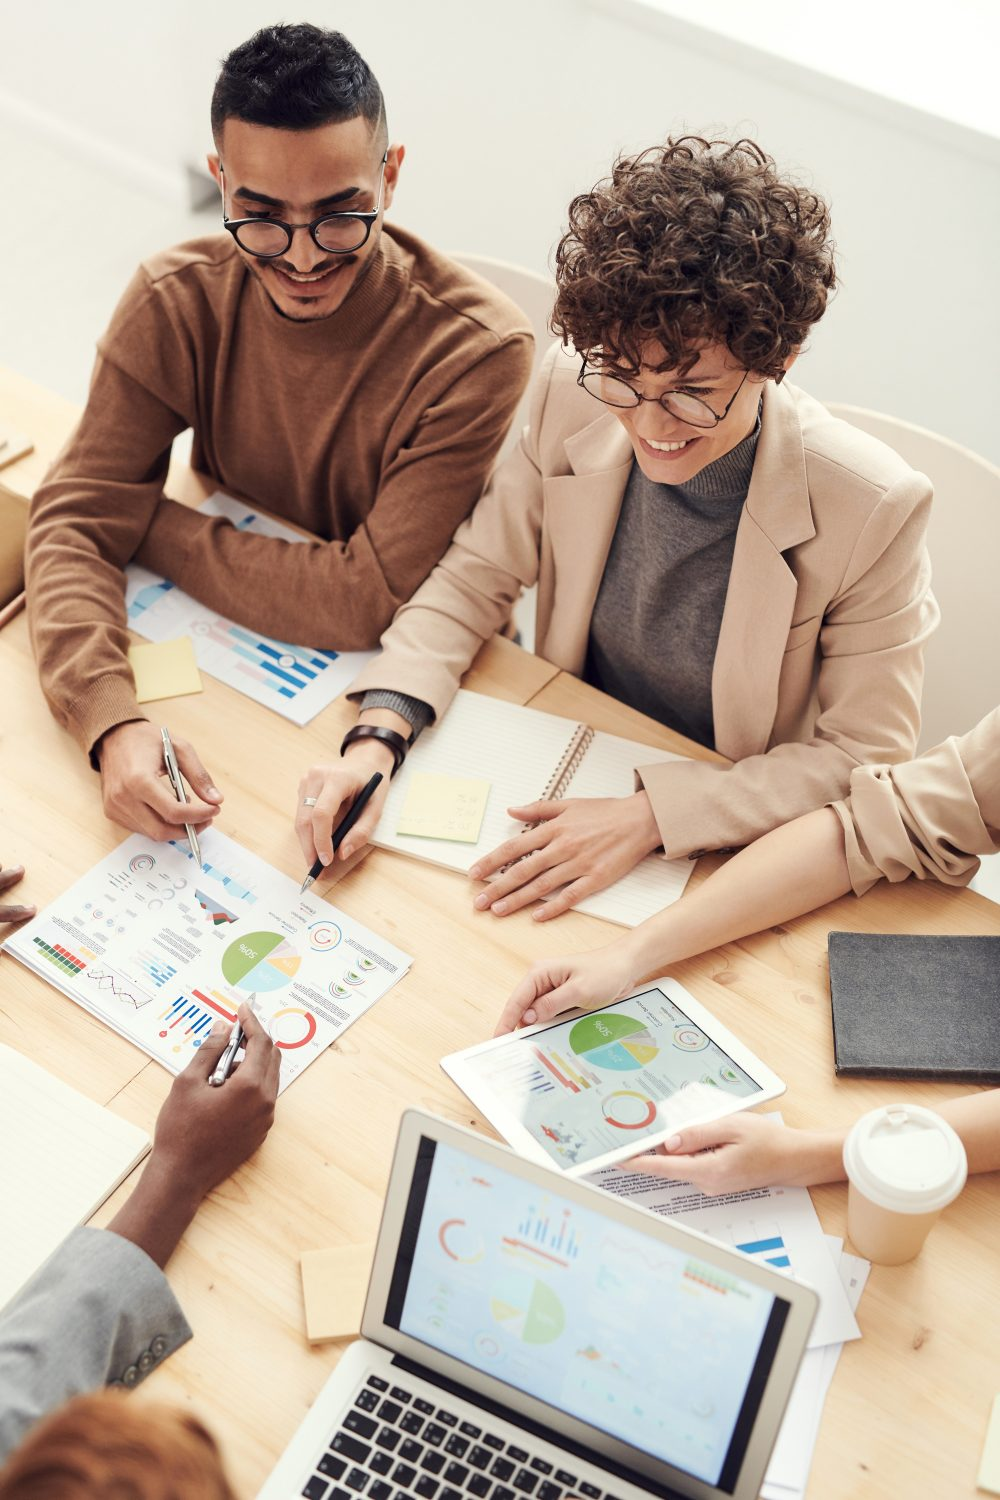 How HR Professionals Can Use Business Analytics To Increase Diversity And Inclusion